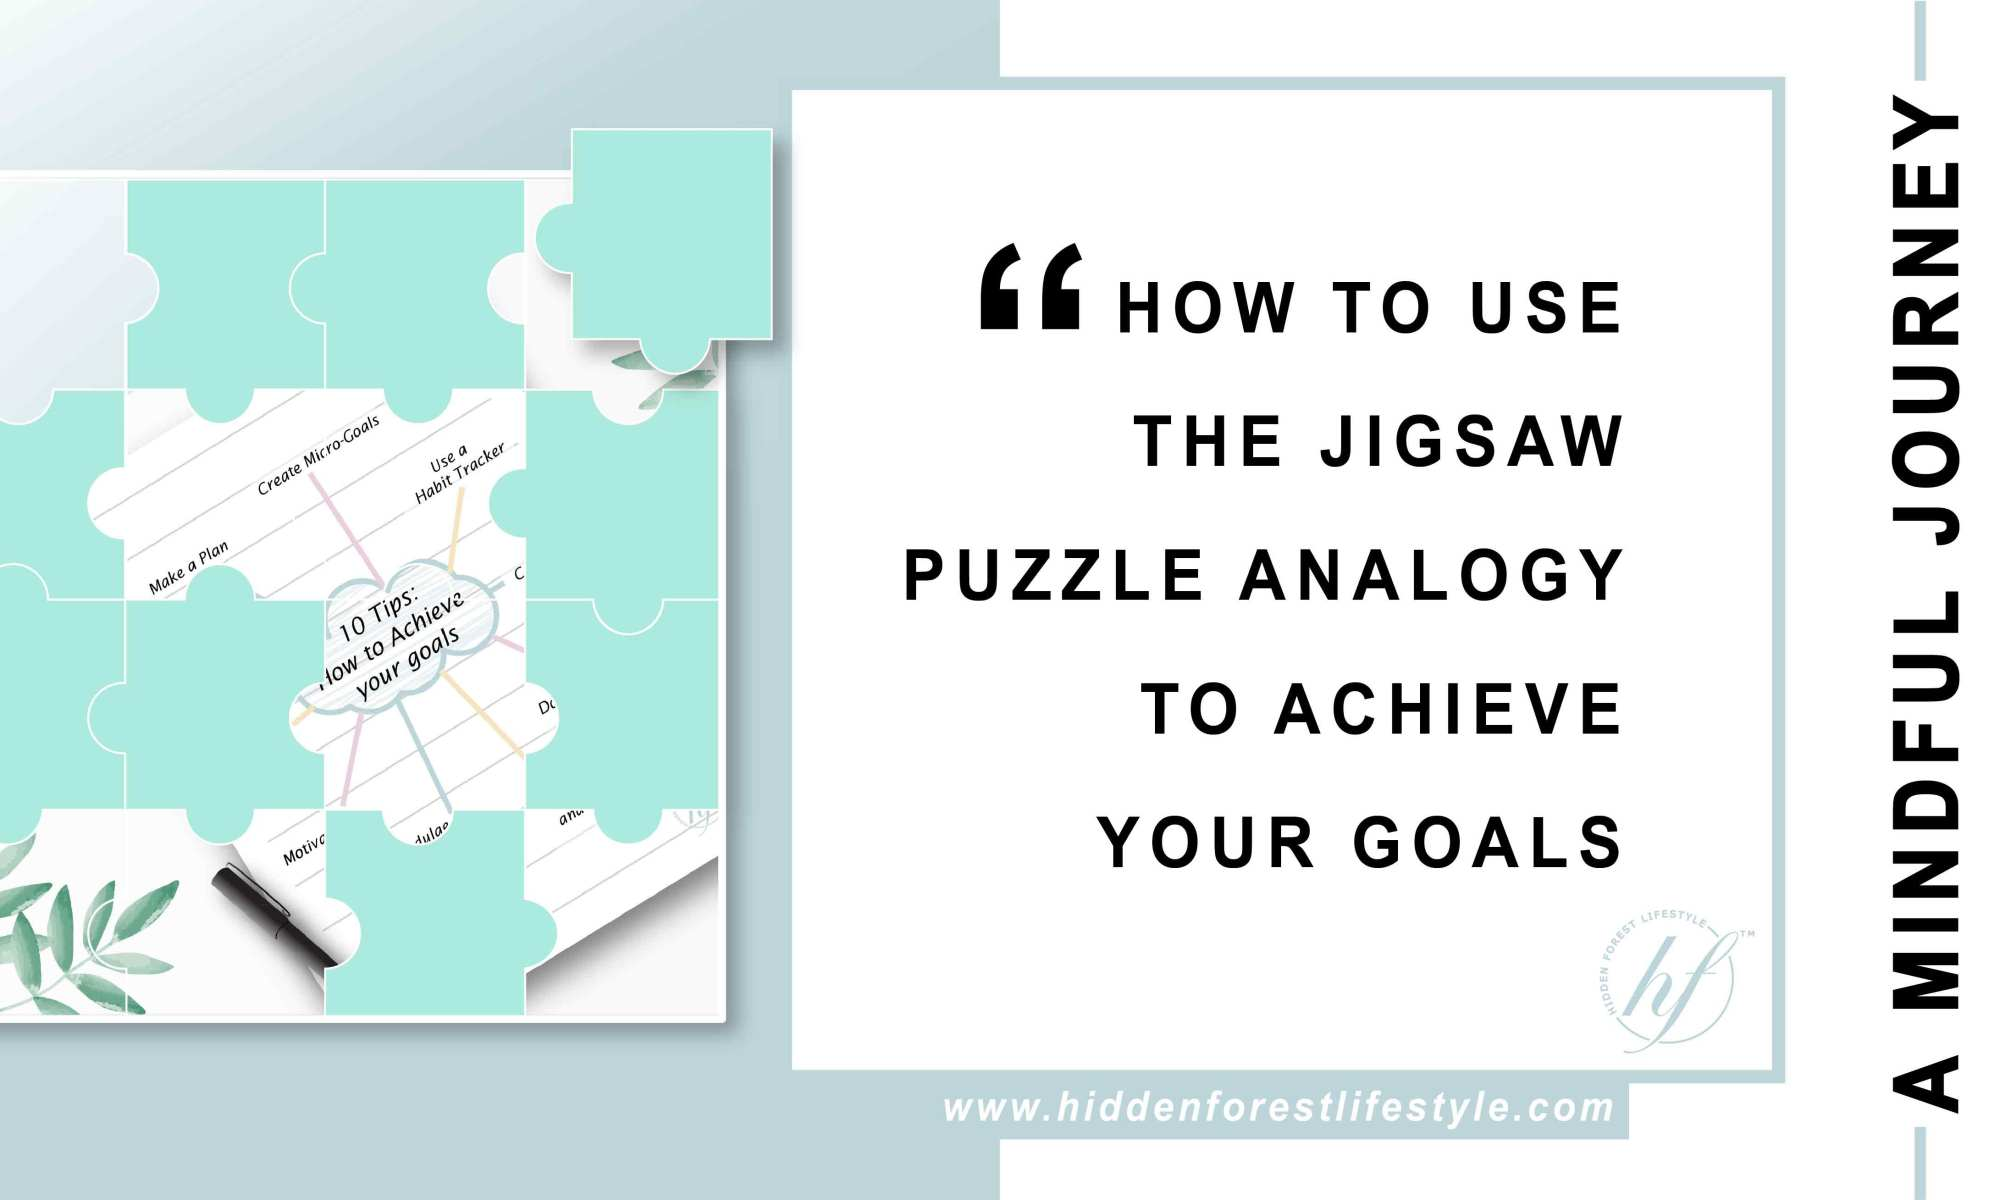 How to use the JIGSAW PUZZLE analogy to ACHIEVE YOUR GOALS!